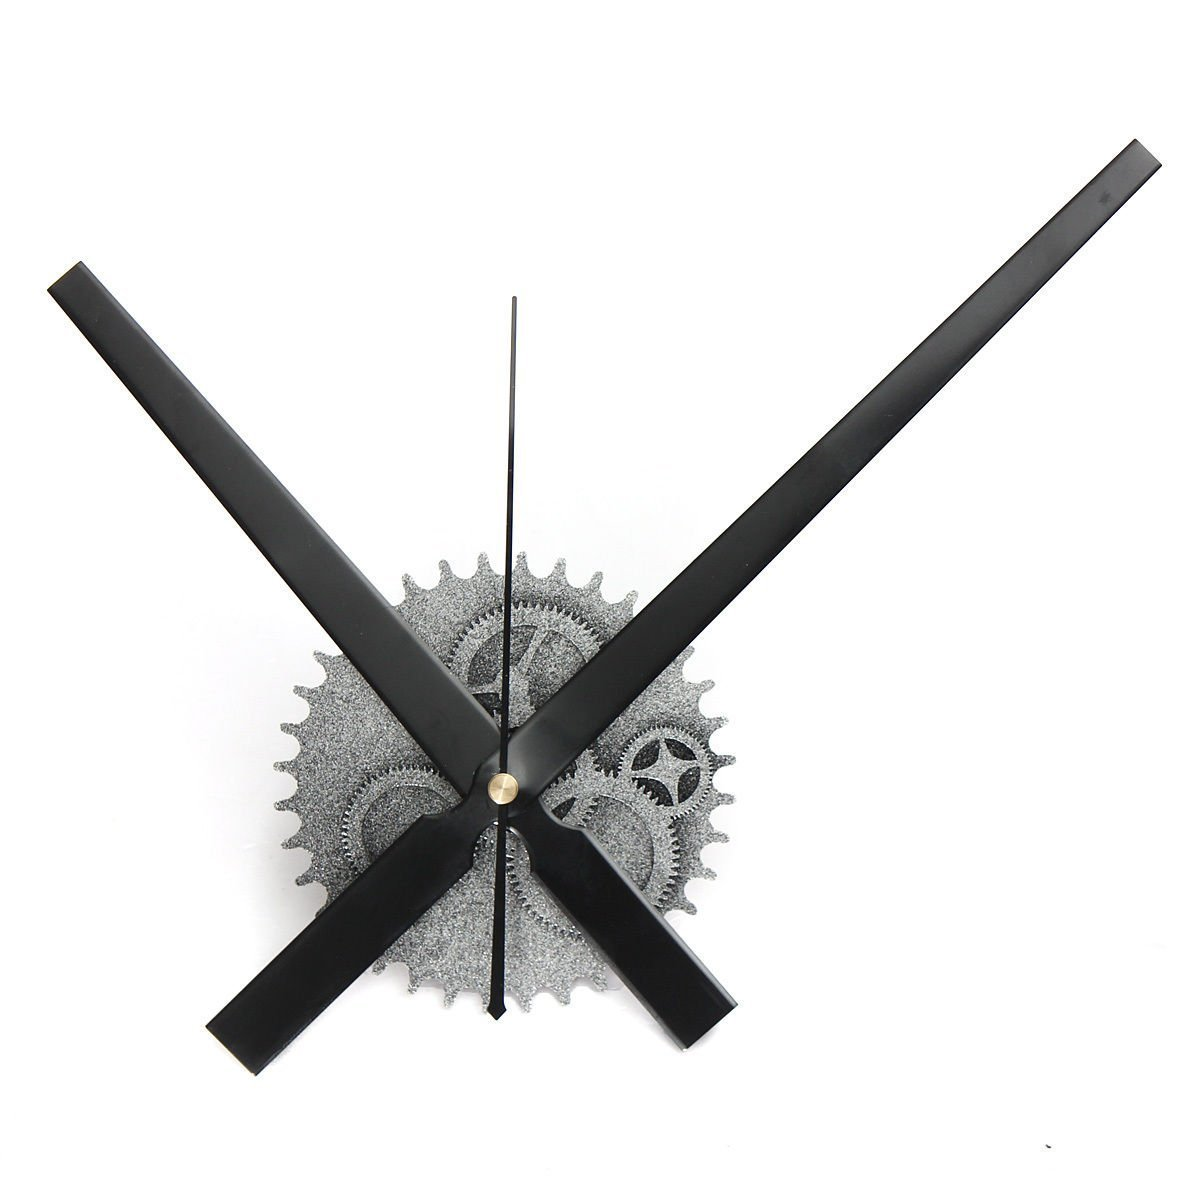 Wall Clock - SODIAL(R) Vintage DIY Mechanism Large Wall Clock Home Living Room Decoration Art Design silver SPHAGT48219